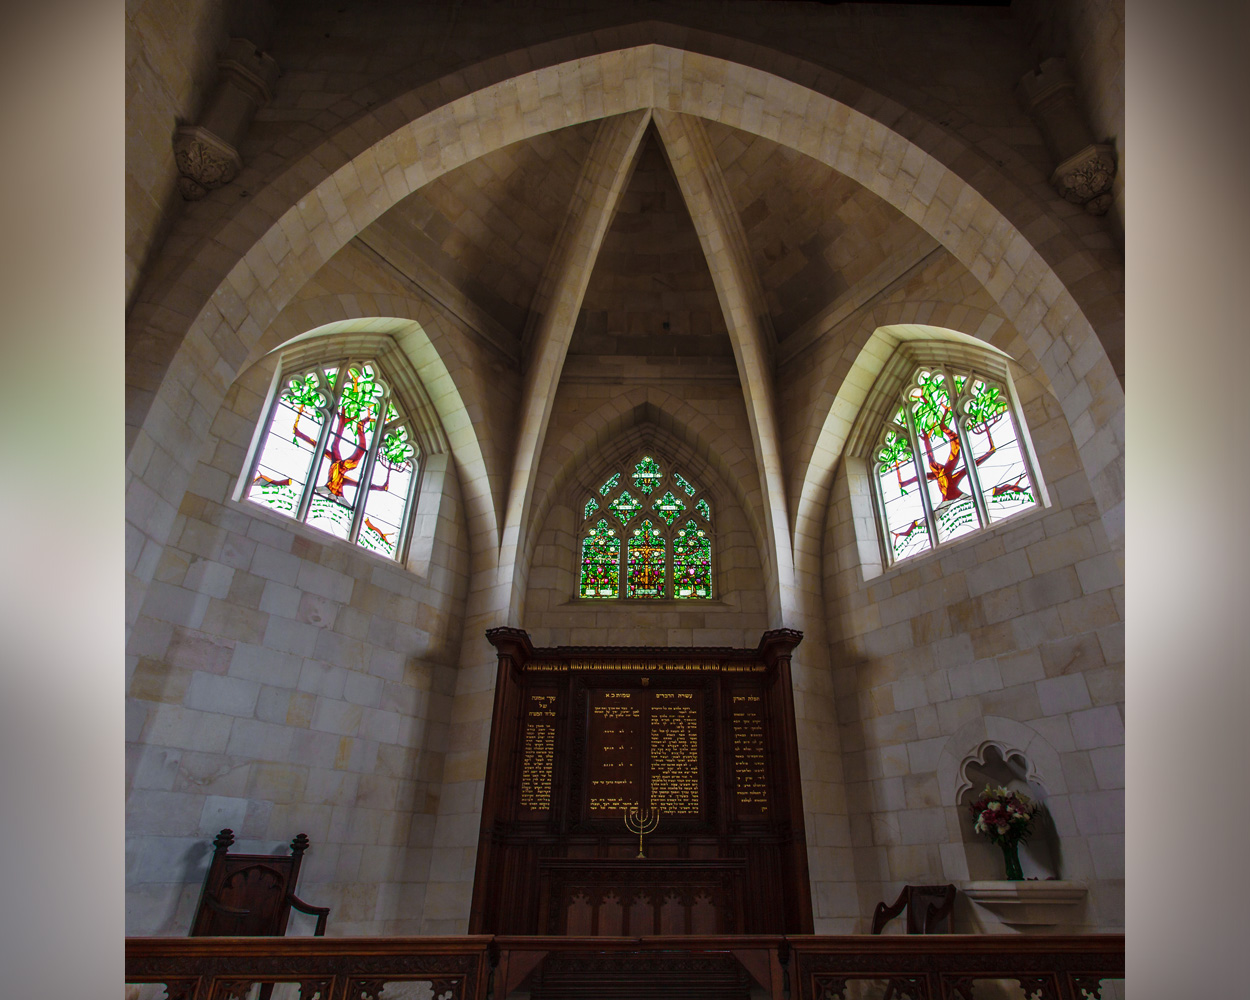 Apse and chancel